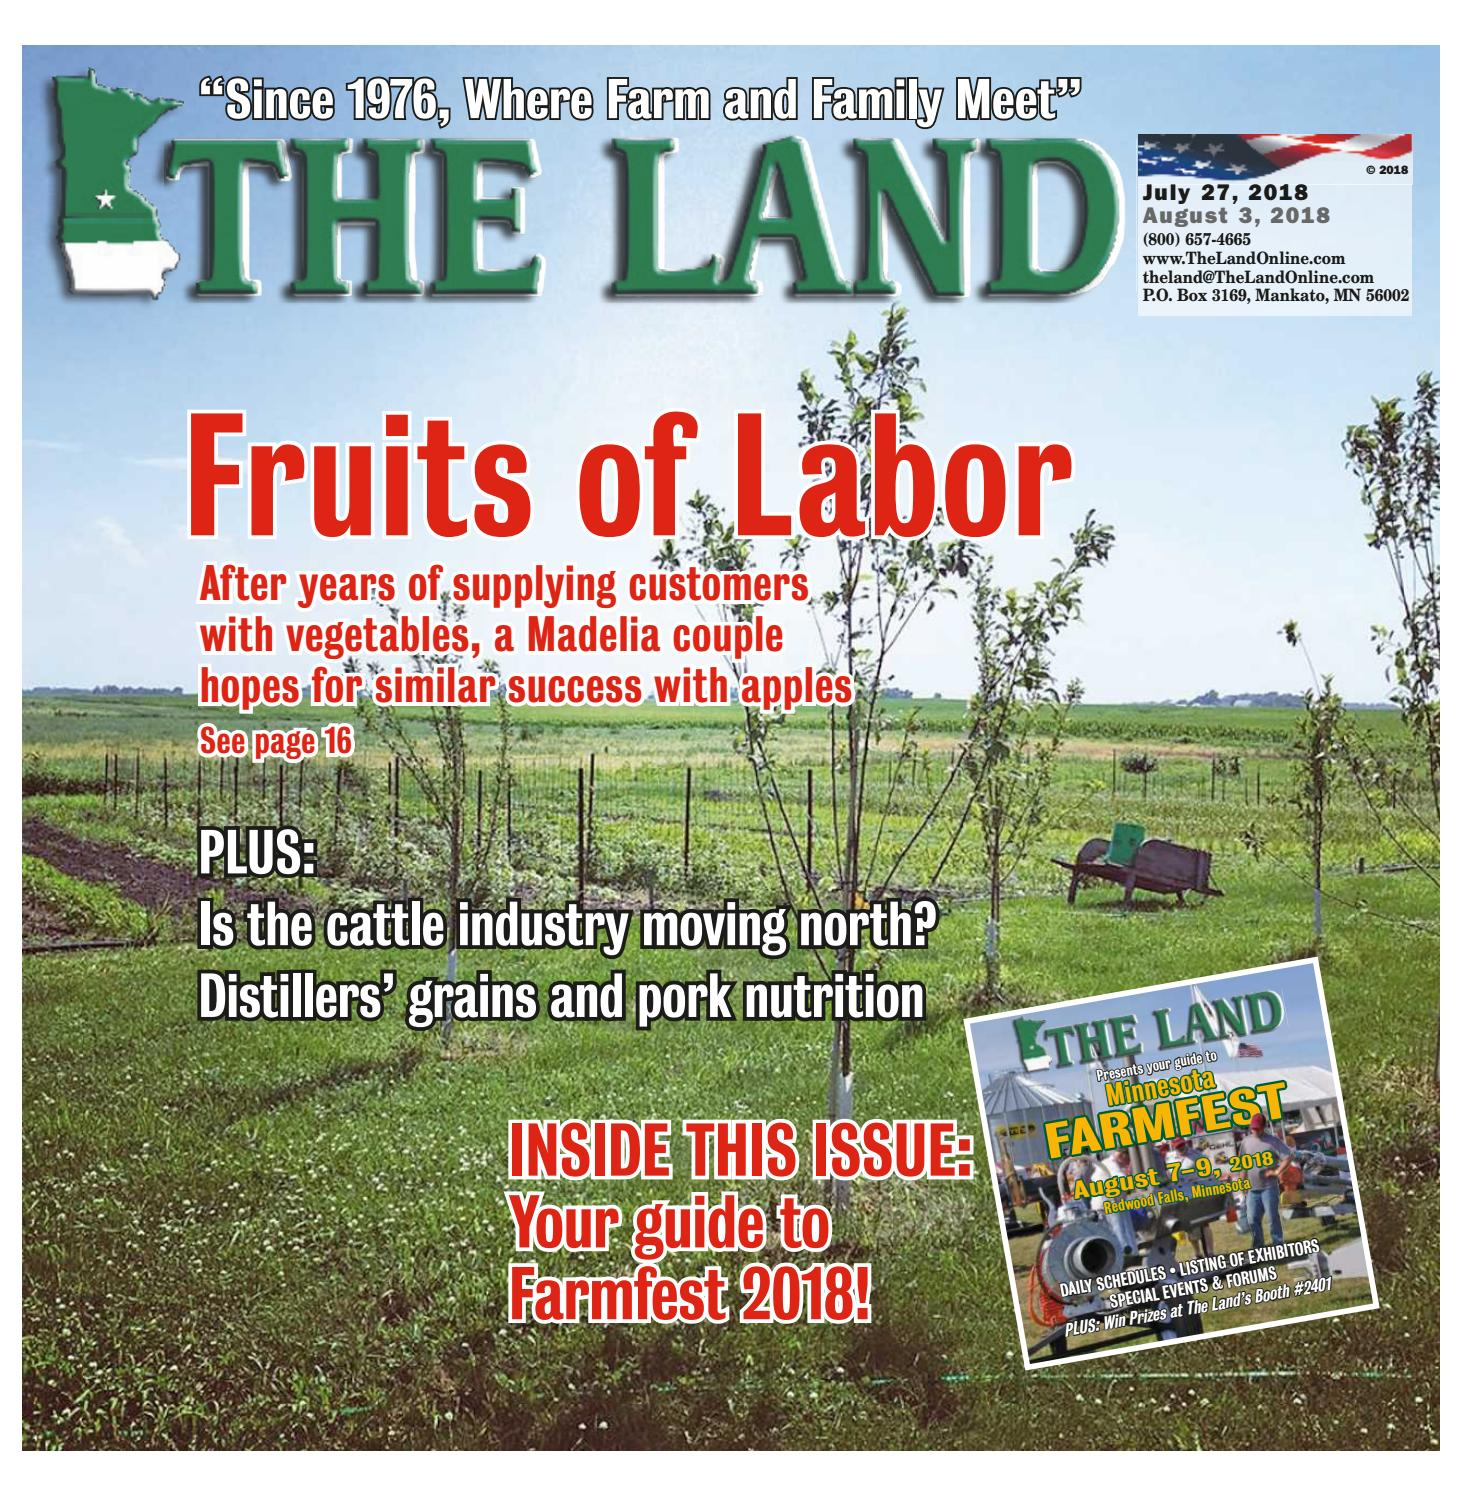 THE LAND July 27 2018 Southern Edition by The Land issuu